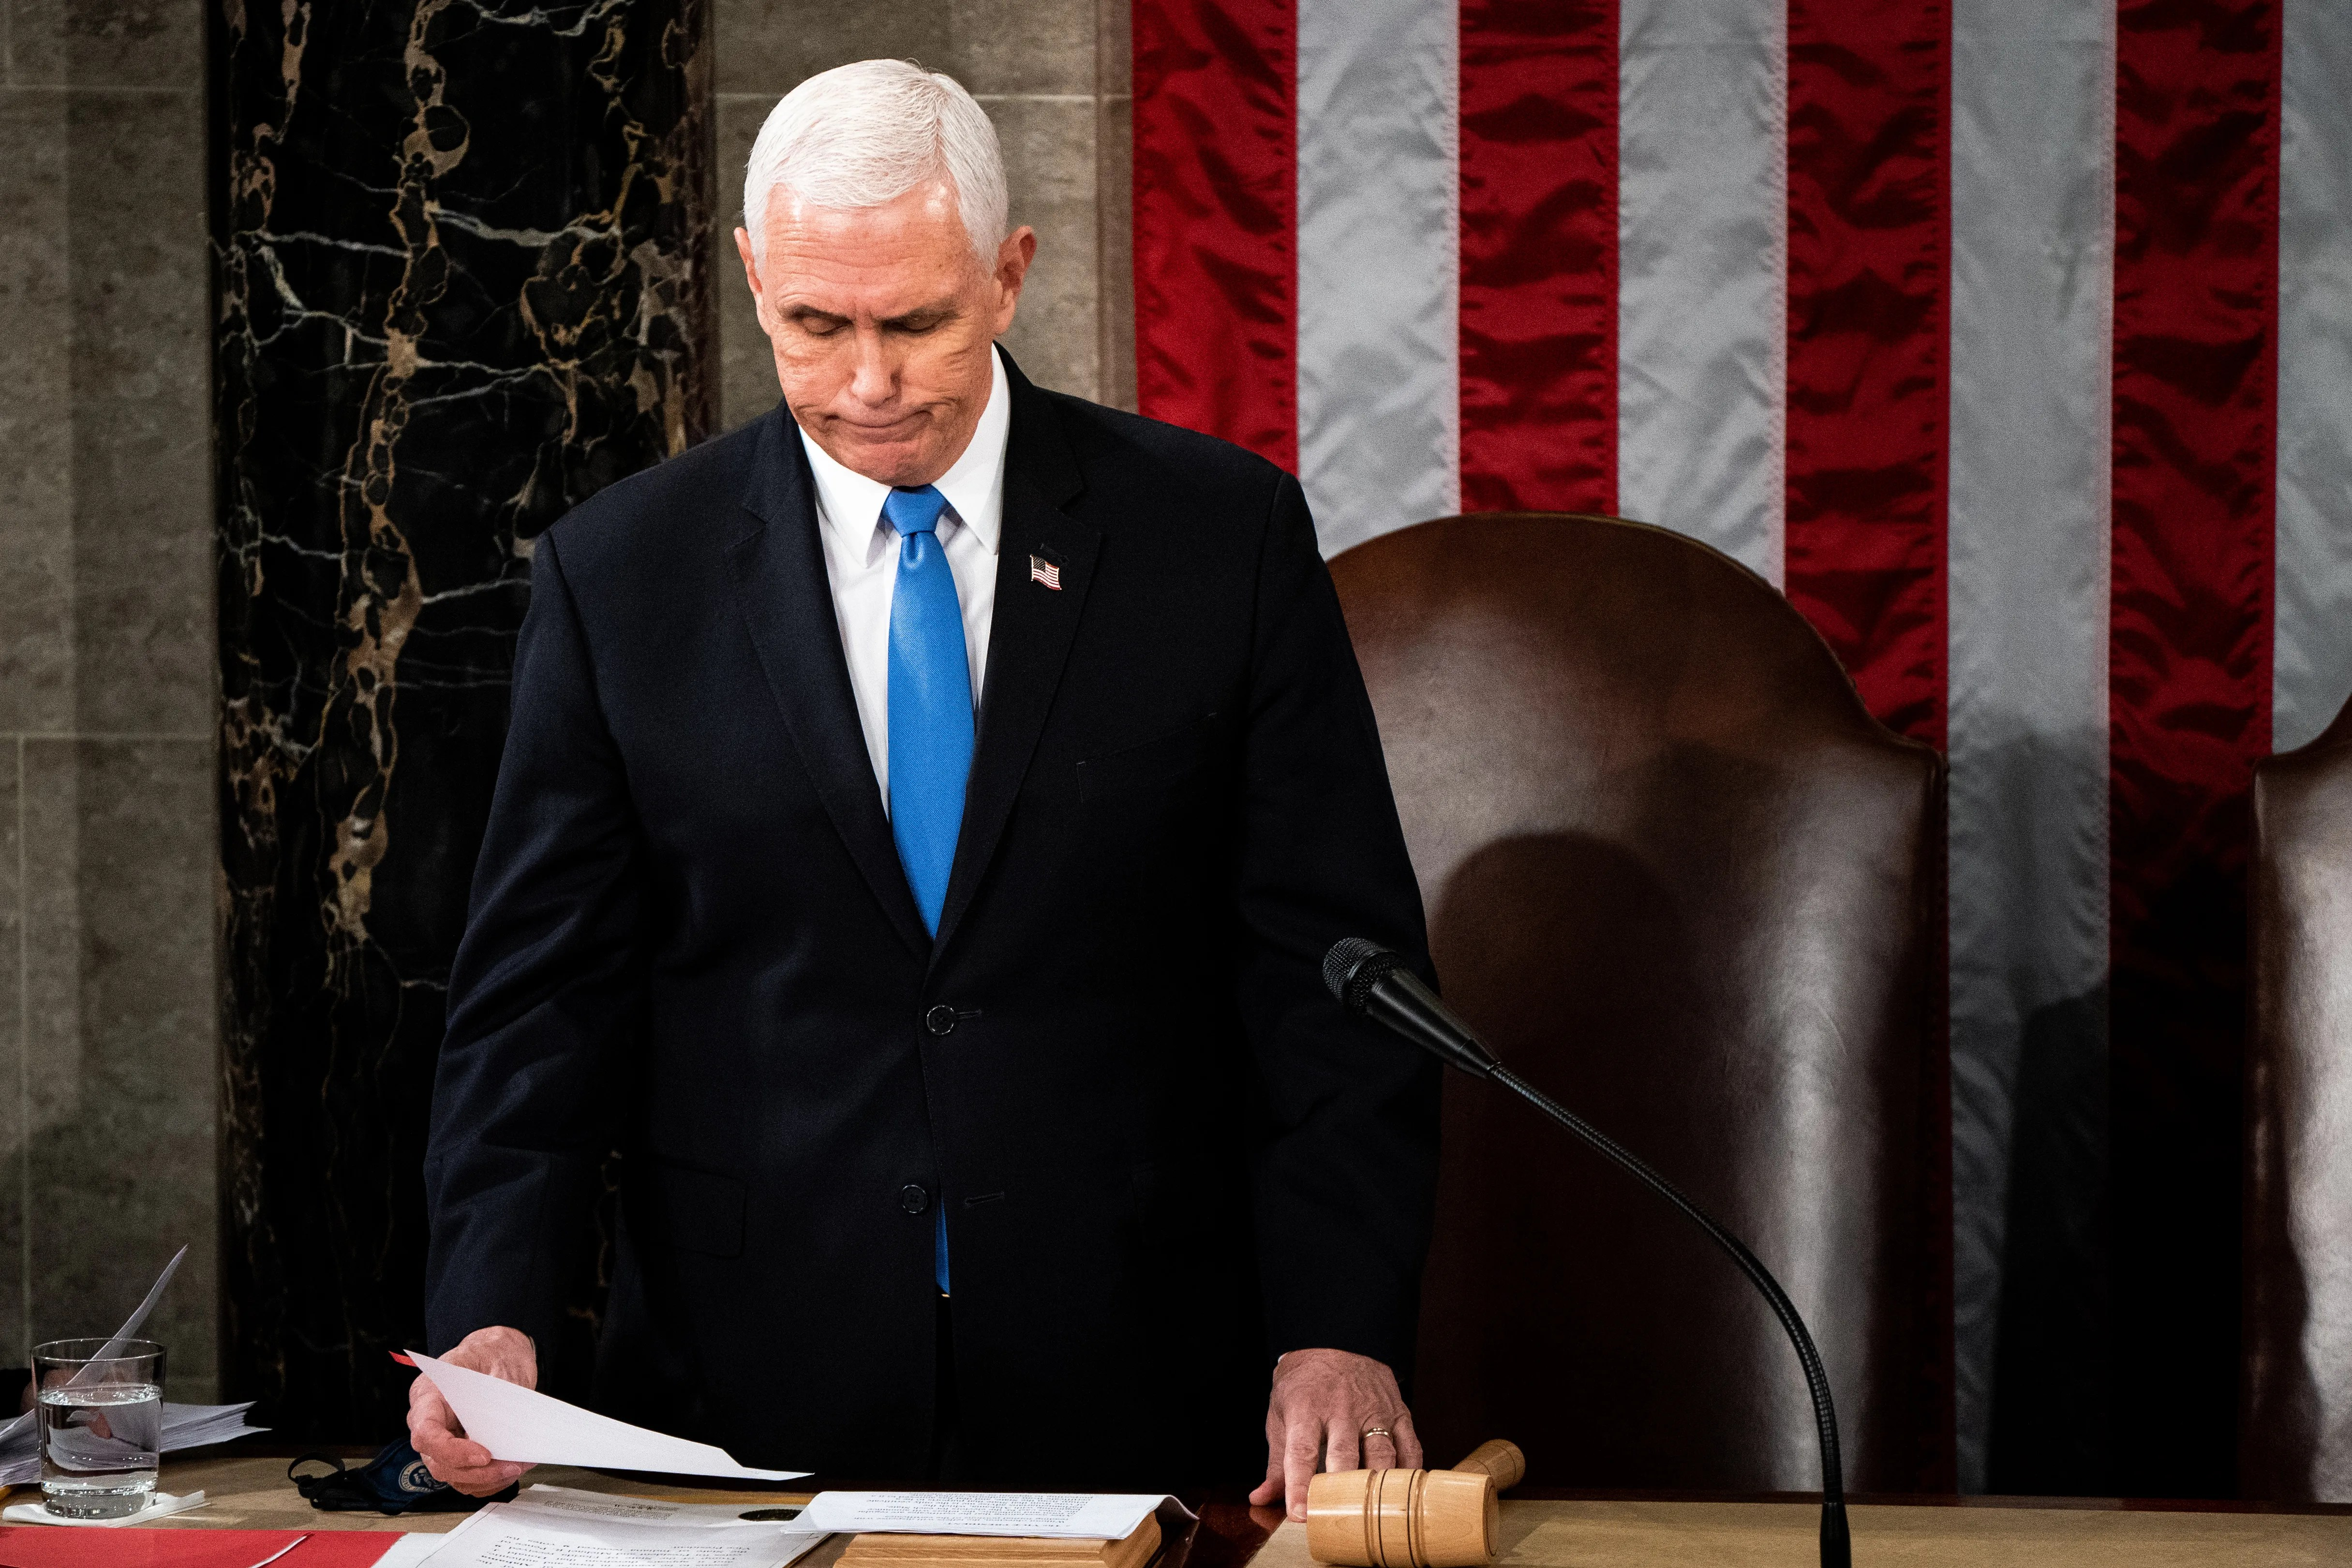 Vice President Mike Pence chairs a joint session of Congress to certify the results of the Electoral College 2020 on January 6, 2021.